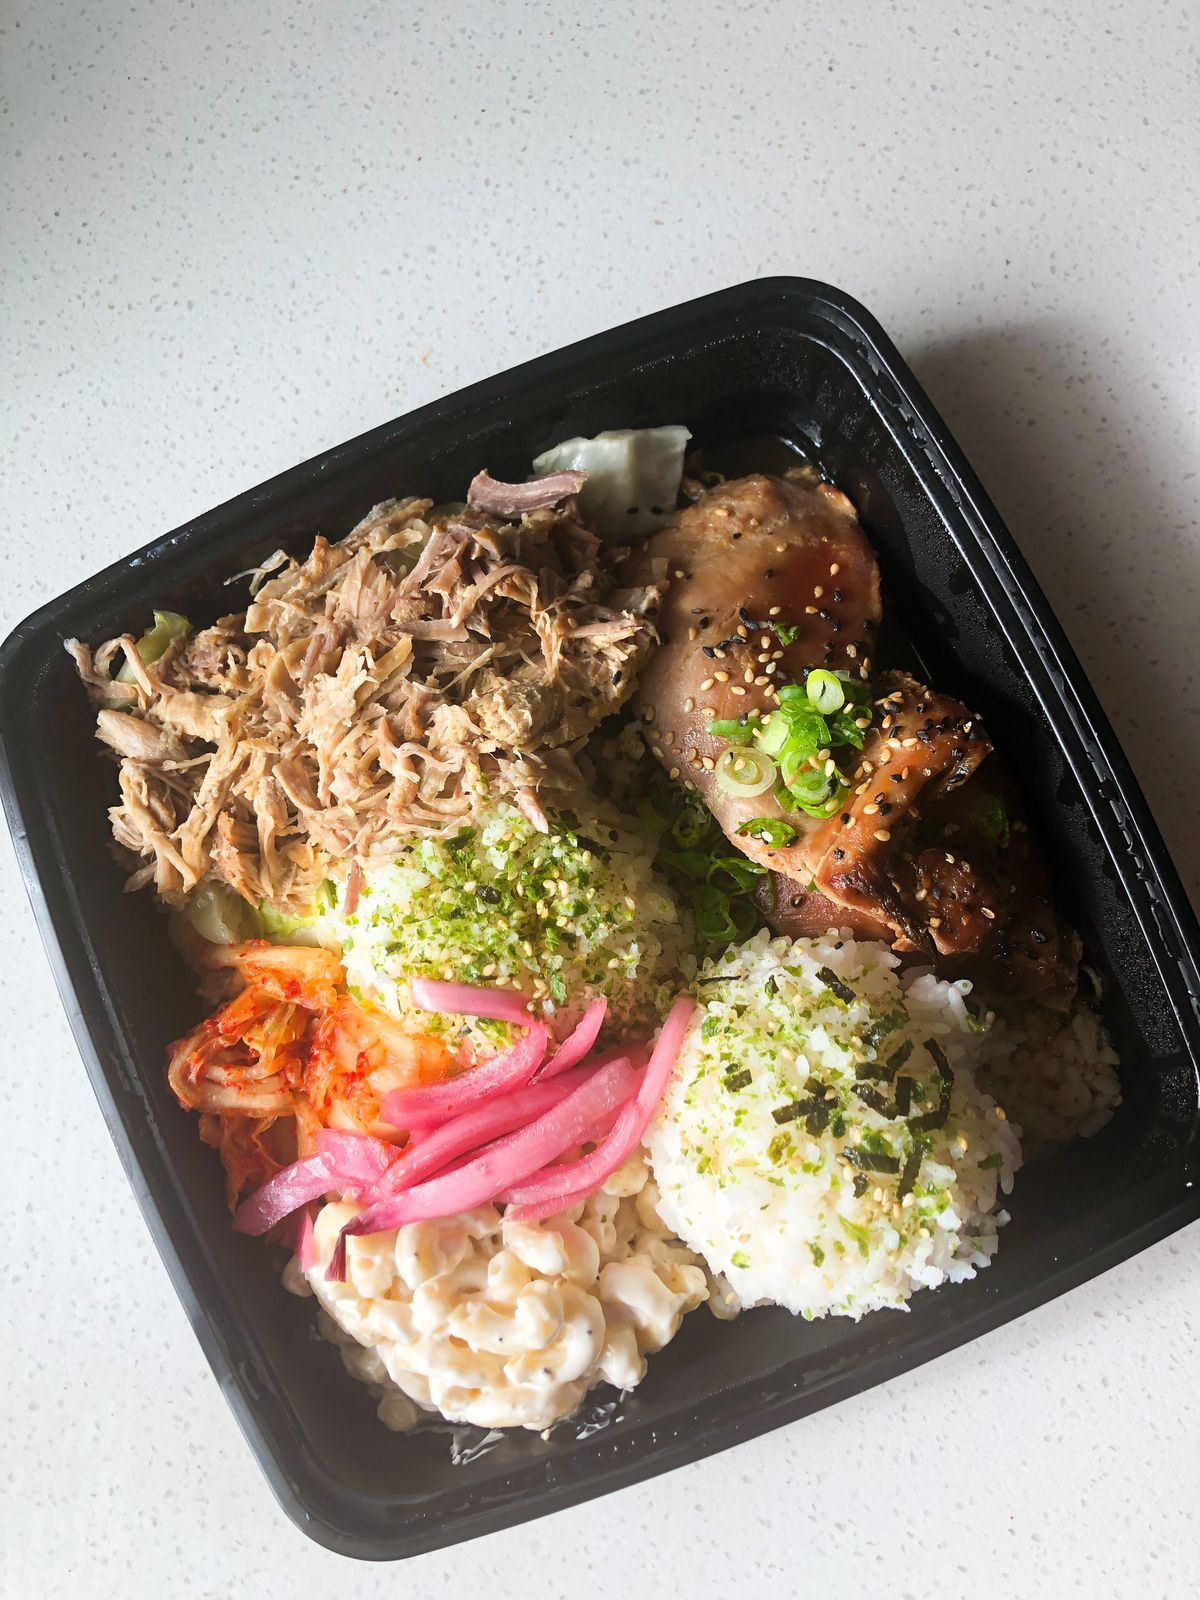 A takeout container of rice, mac salad, teriyaki-style chicken and kalua pig on a counter